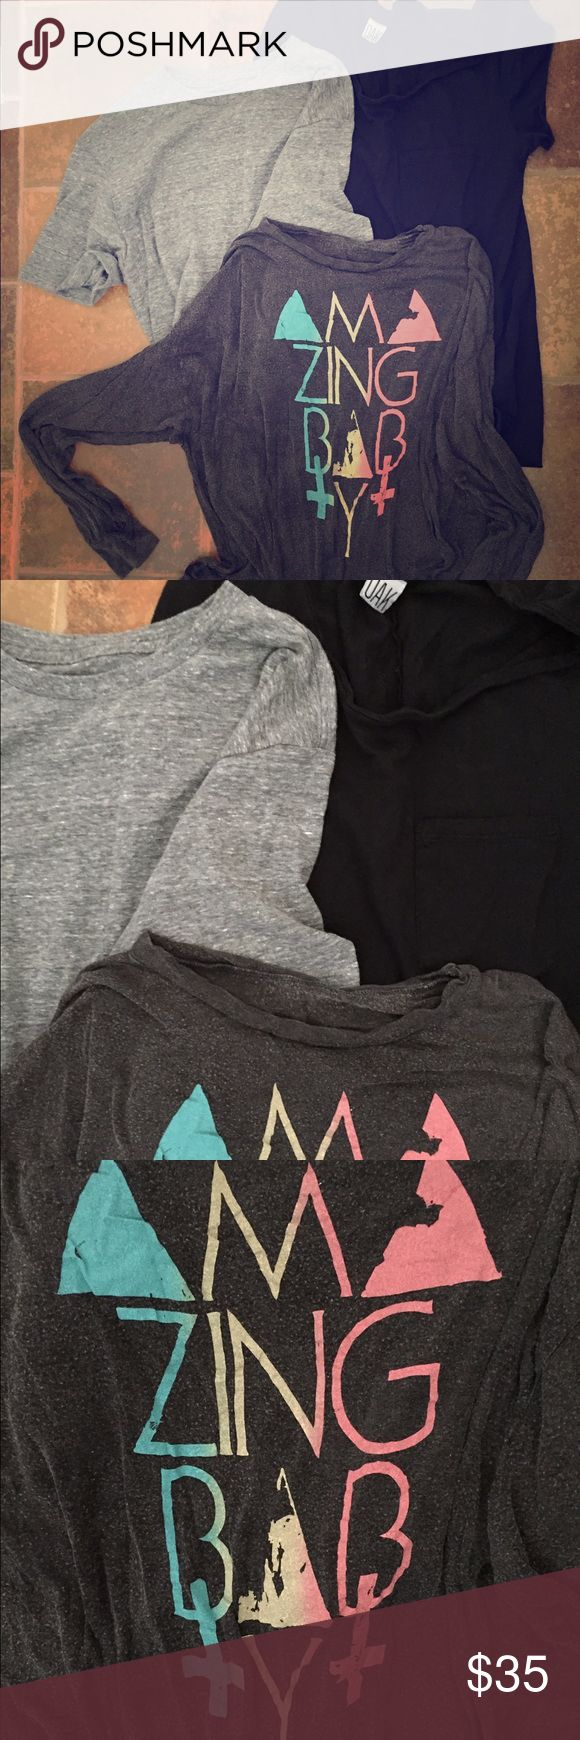 Oak NYC and Brandy Melville Tshirt Bundle Once you put on these super soft tees from the coolest cool girl stores of LA & NYC, you won't want to take them off! I ONLY buy tees that are super soft & have that lived-in look 😂 They pair well with anything in your closet, at that price you can't go wrong! Each tee has only been worn a few times so are in great condition! The heather grey is a drop Shoulder cropped tee, the black is just a simple tee, while the long sleeve is meant to have the…